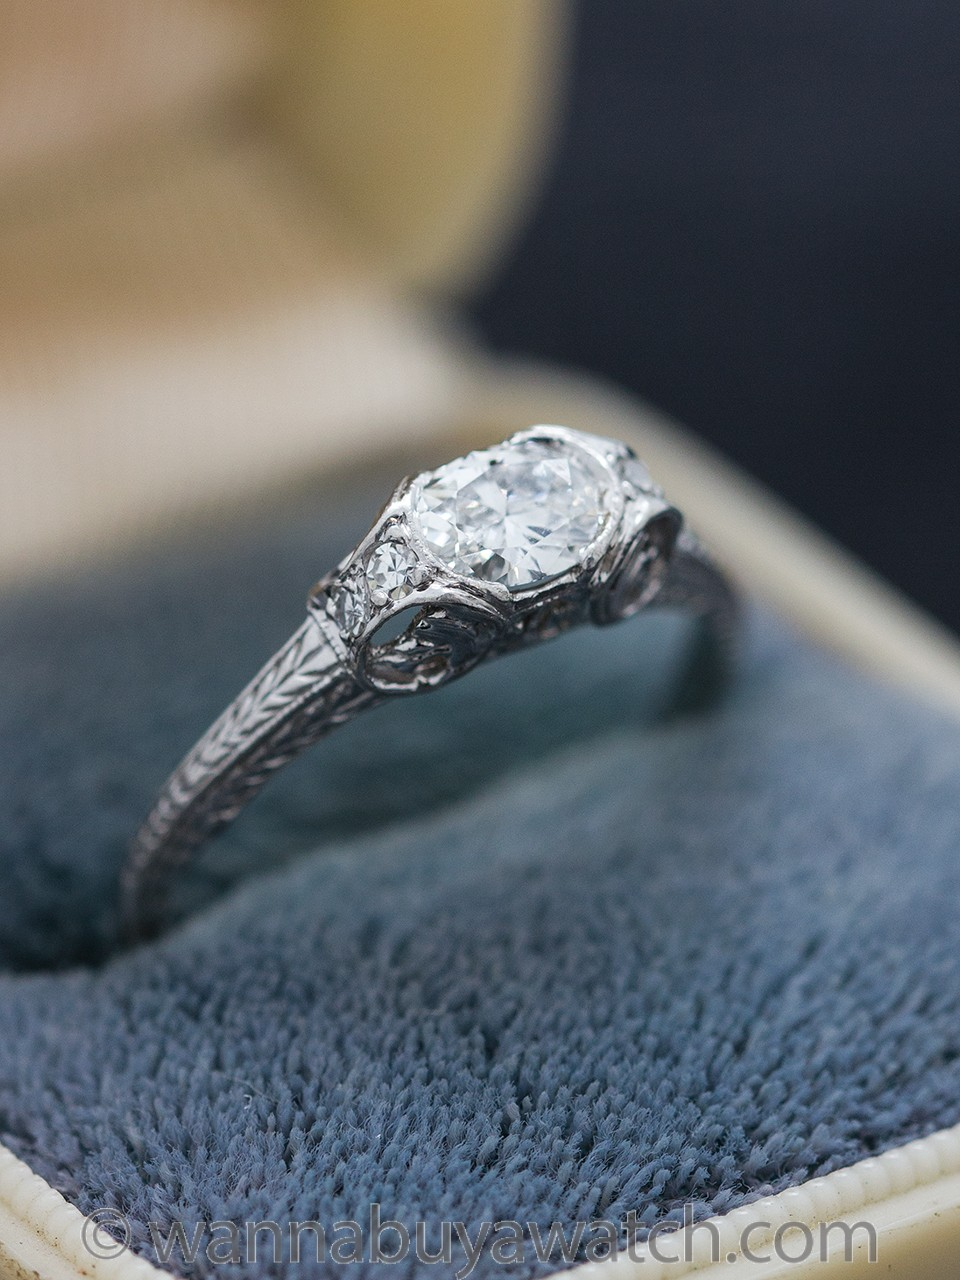 Engraved Platinum Engagement Ring 0.32 Carat Oval Cut G-VVS2